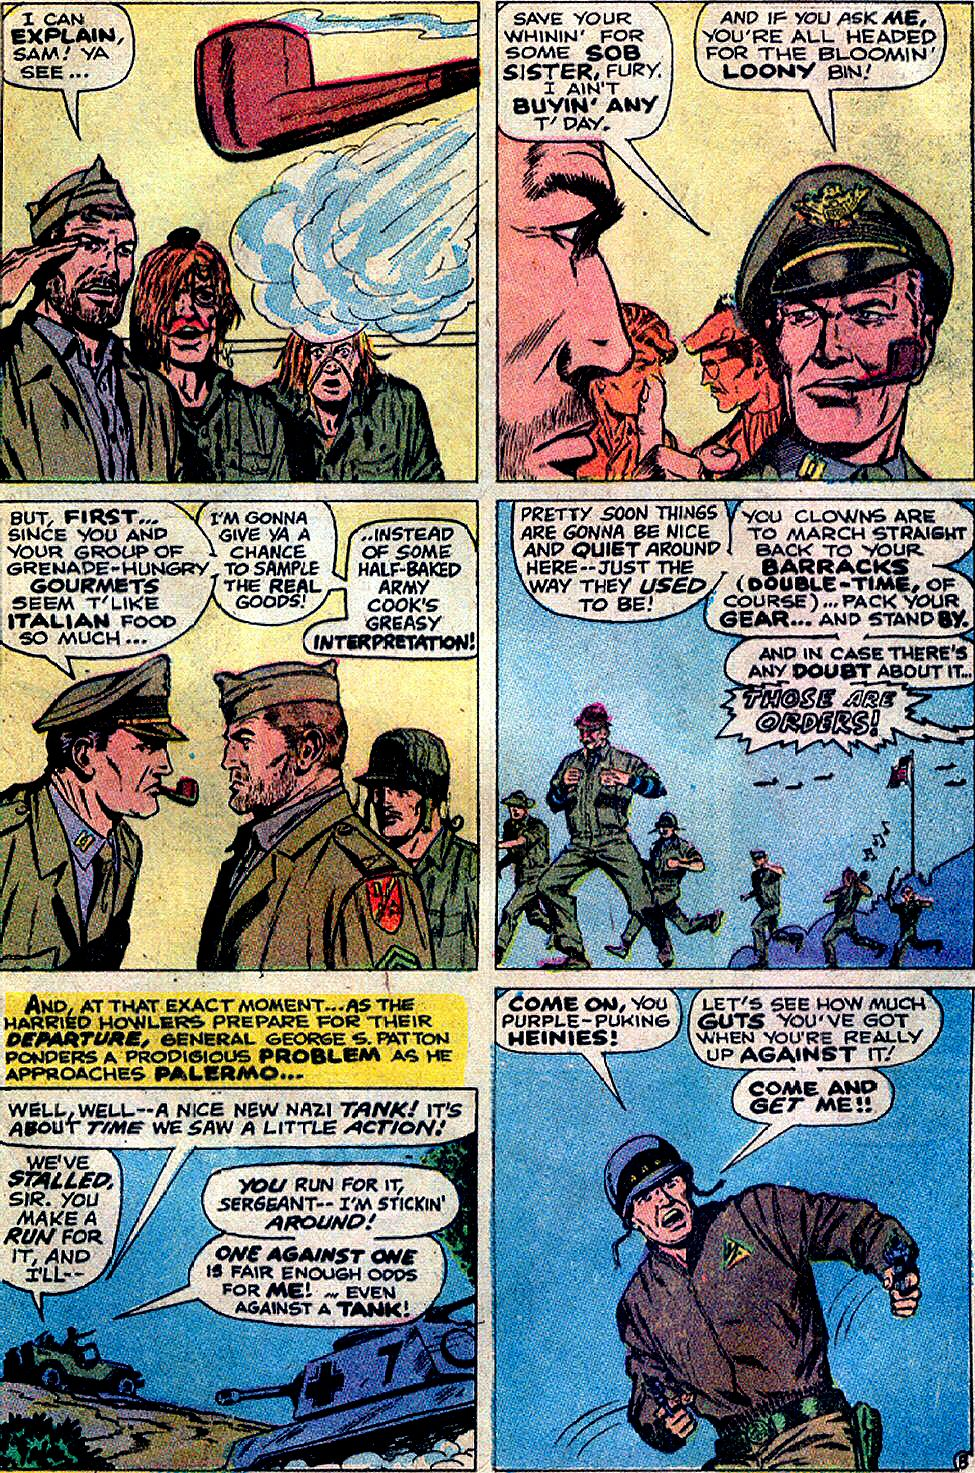 Read online Sgt. Fury comic -  Issue #88 - 13